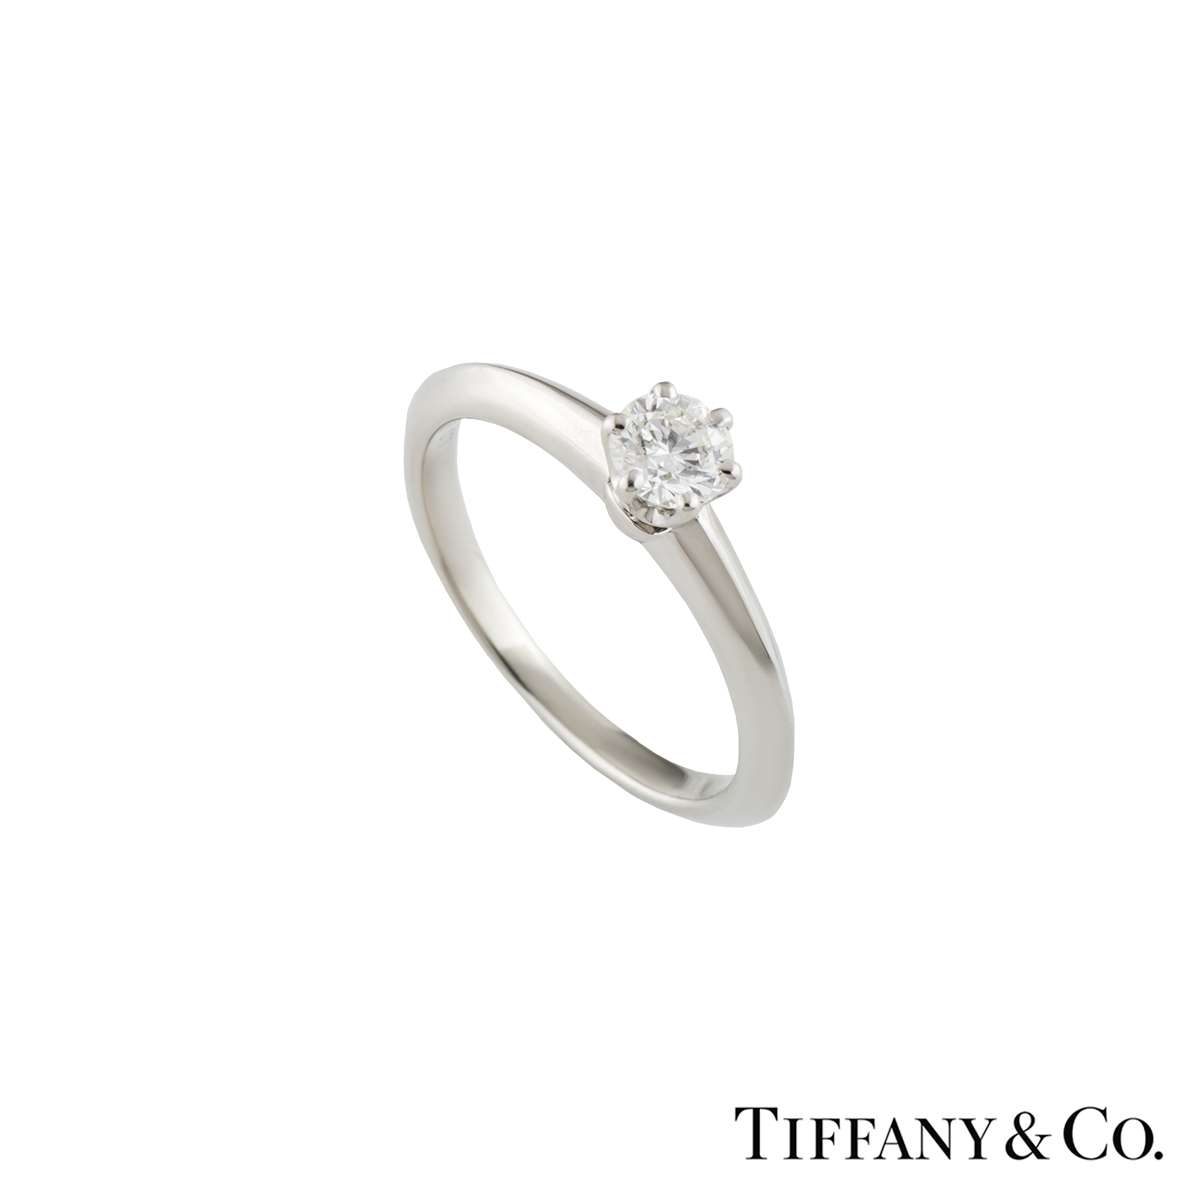 Tiffany & Co. Setting Diamond Ring 0.29ct F/VS1